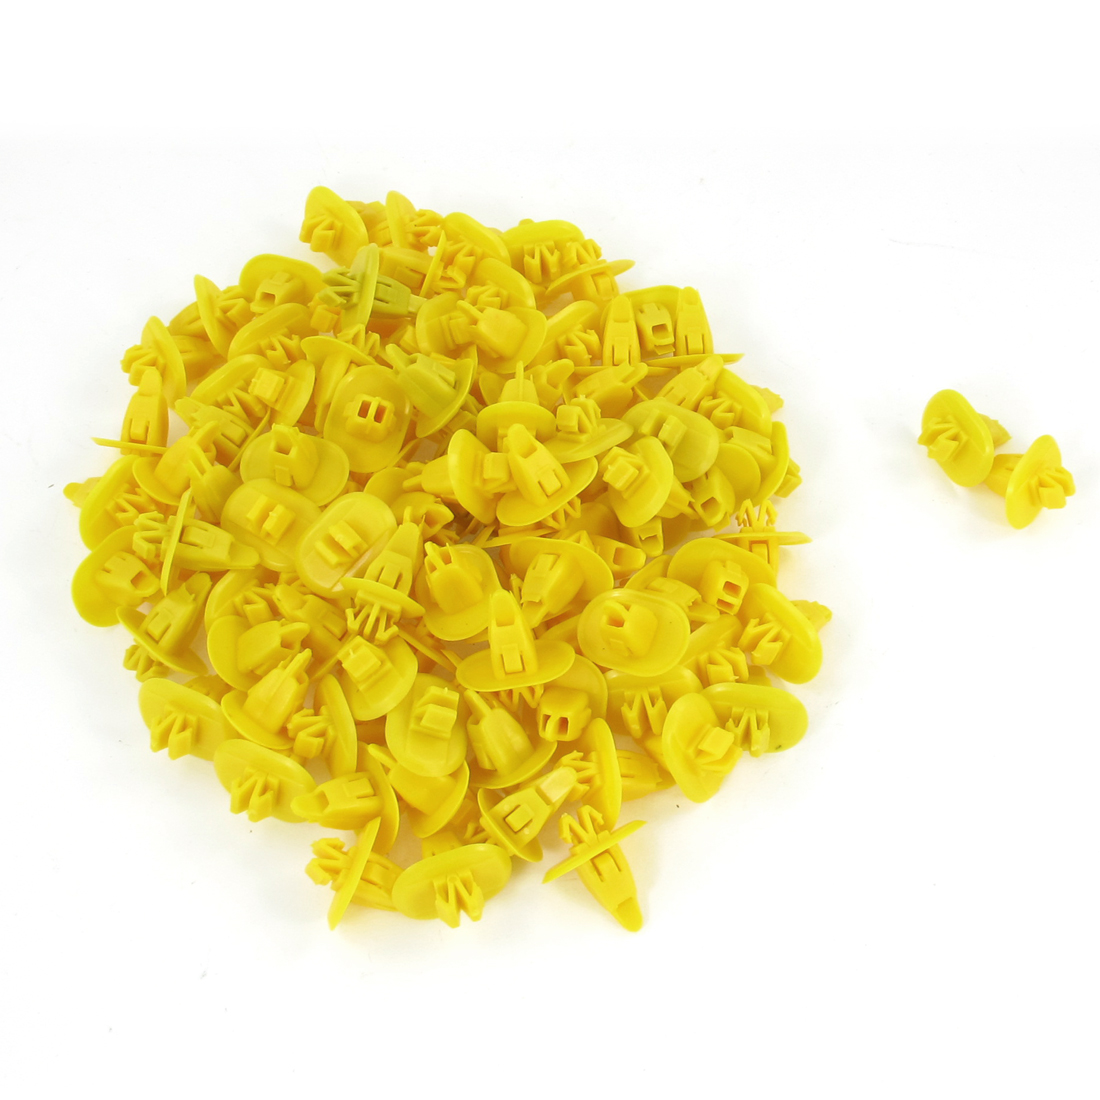 100 Pcs 8mm x 8mm Hole Yellow Plastic Rivet Fastener for Car Door